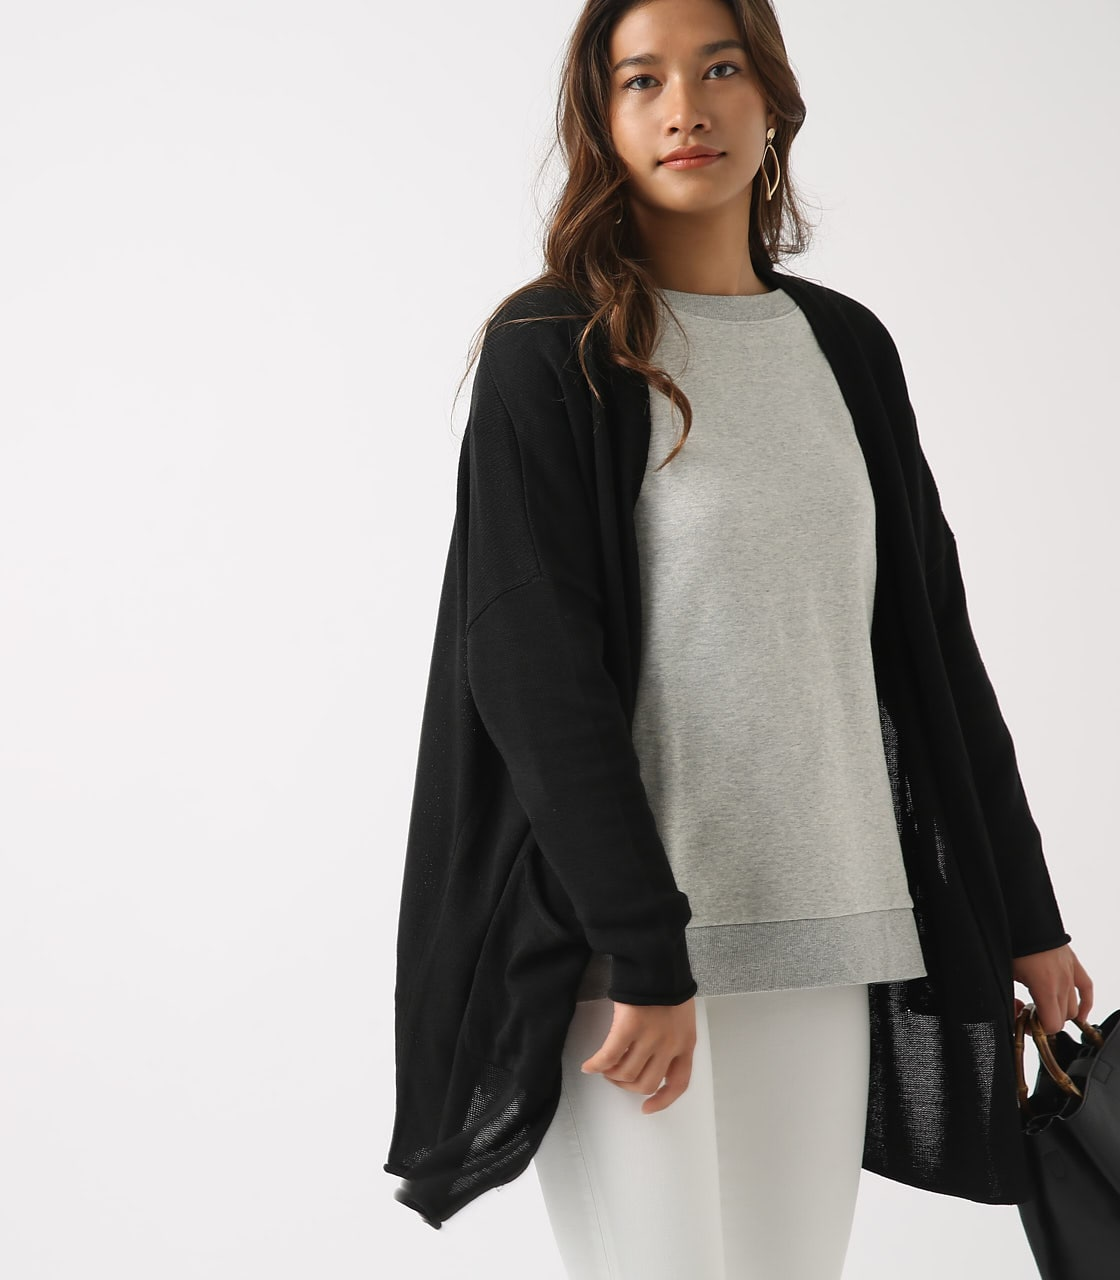 SHEER KNIT CARDIGAN 詳細画像 BLK 1